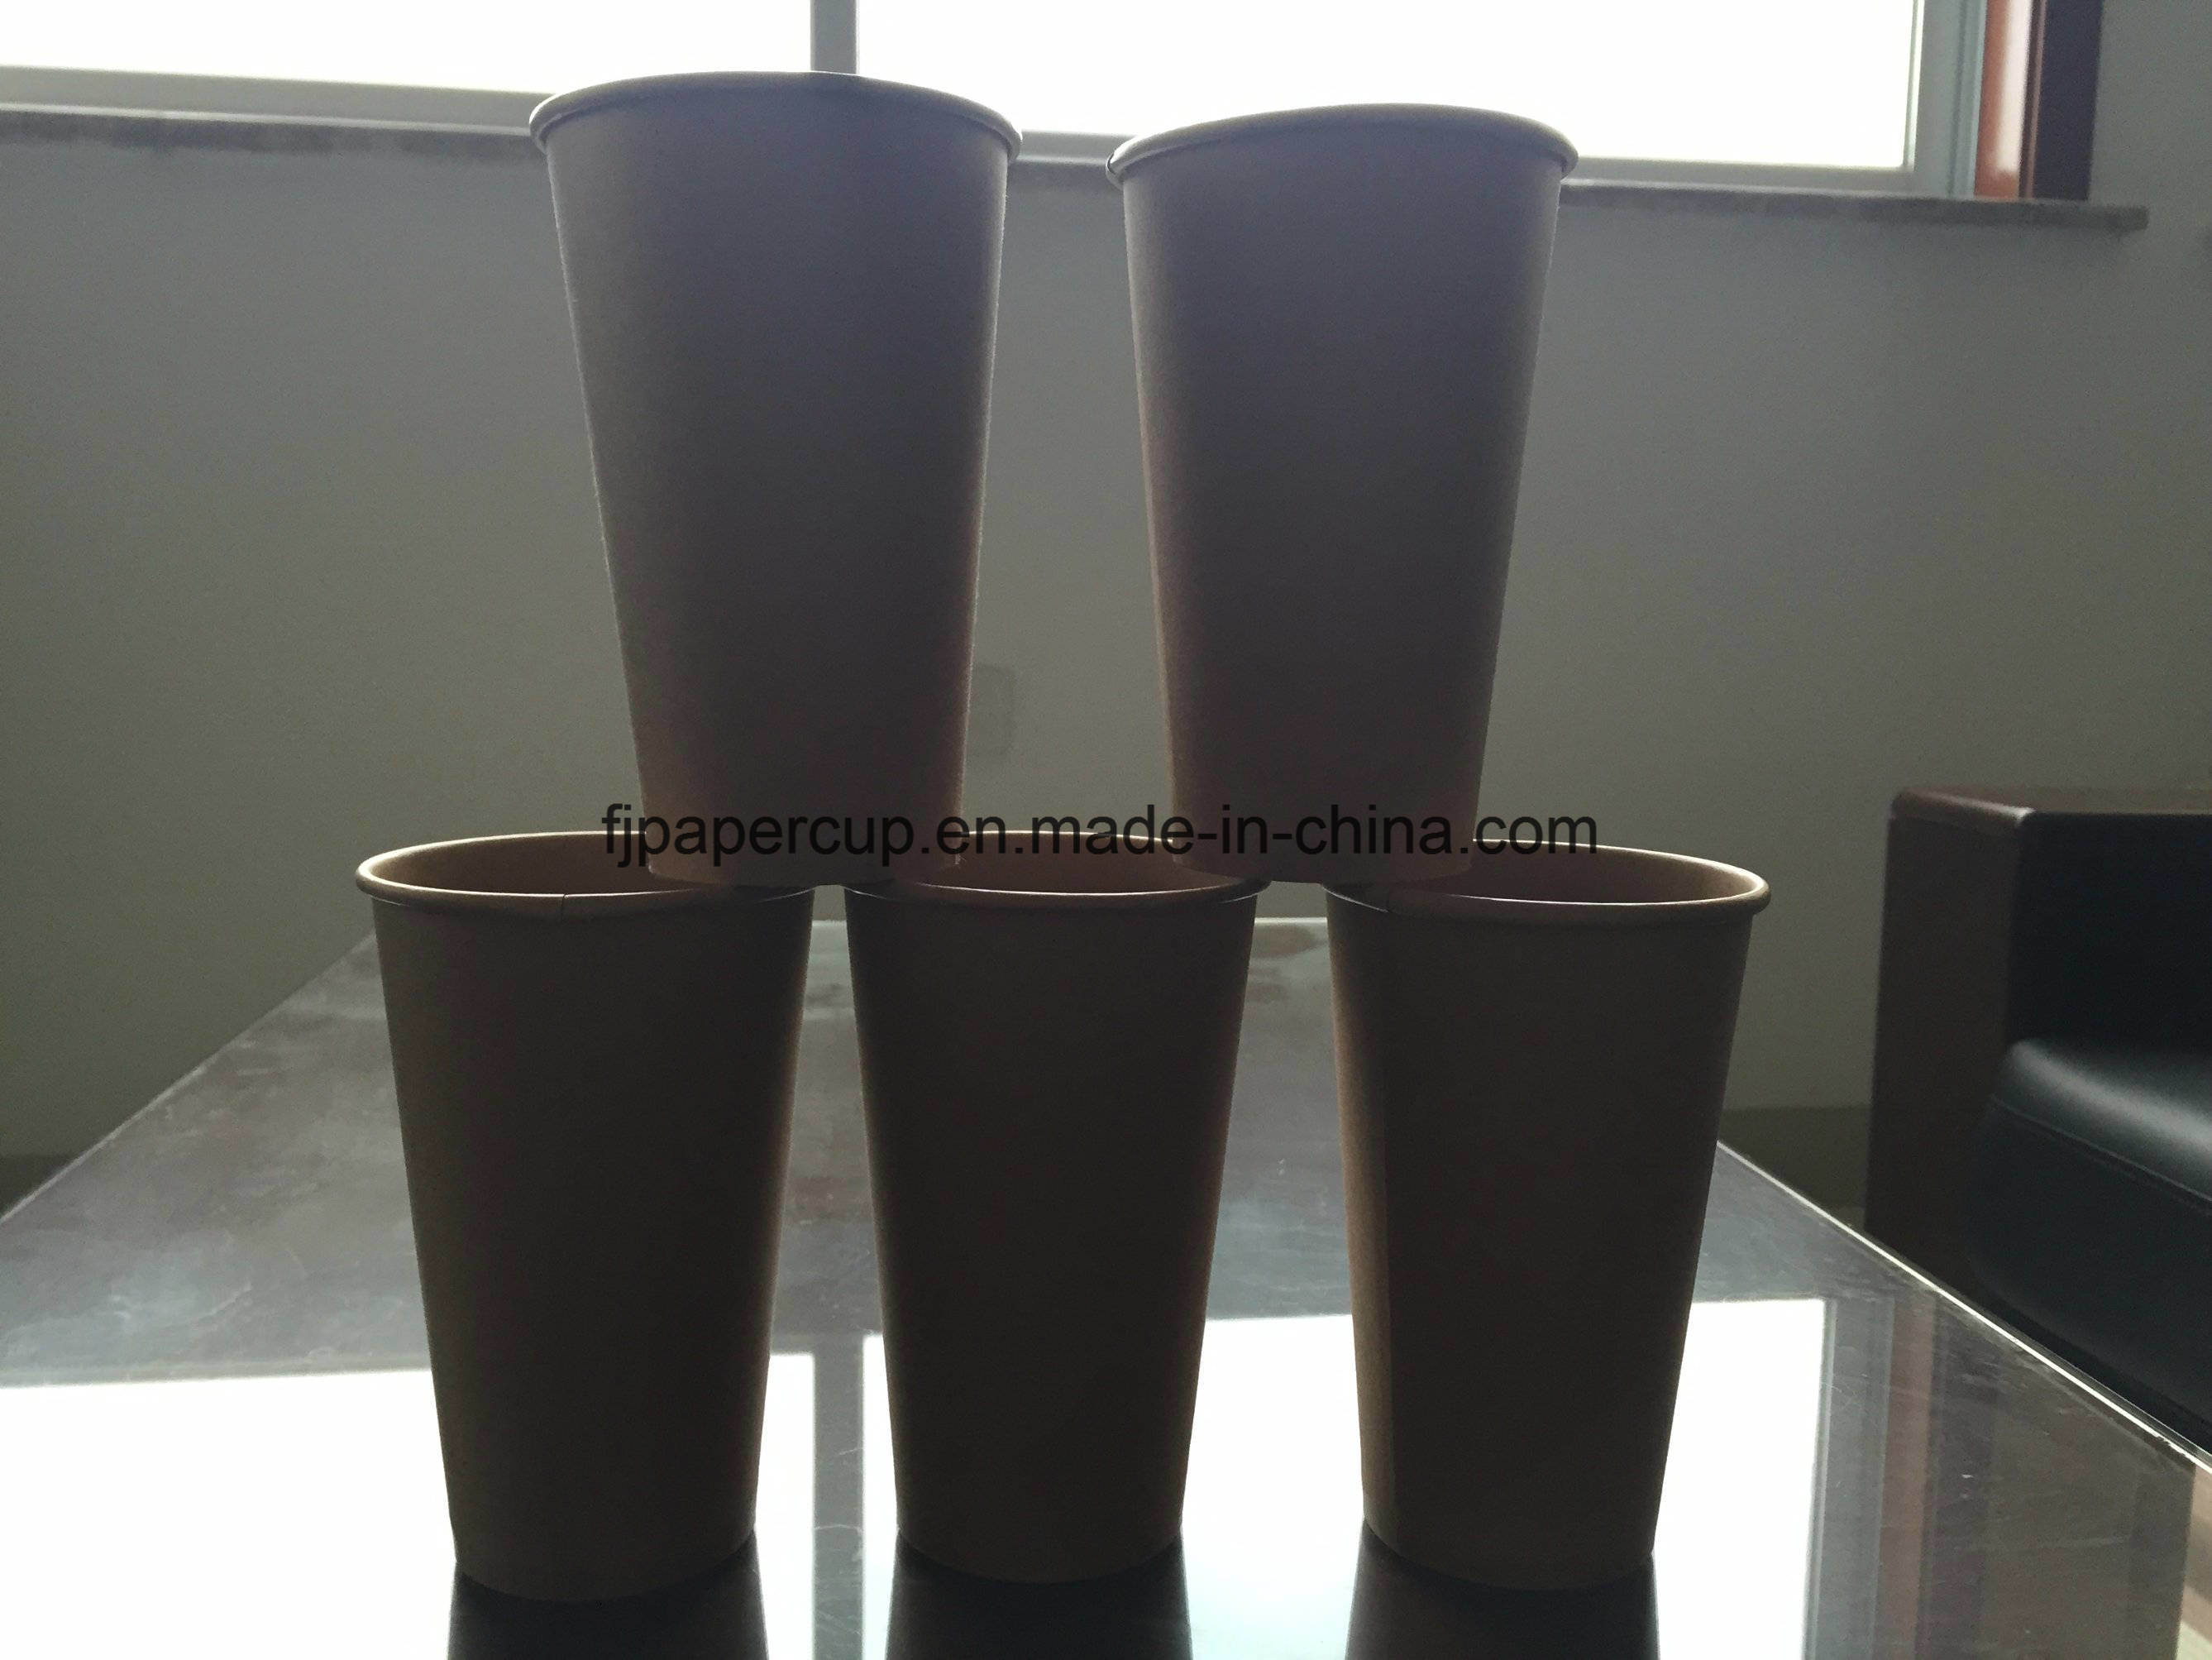 Kraft Coffee Paper Cup with Food Grade Material